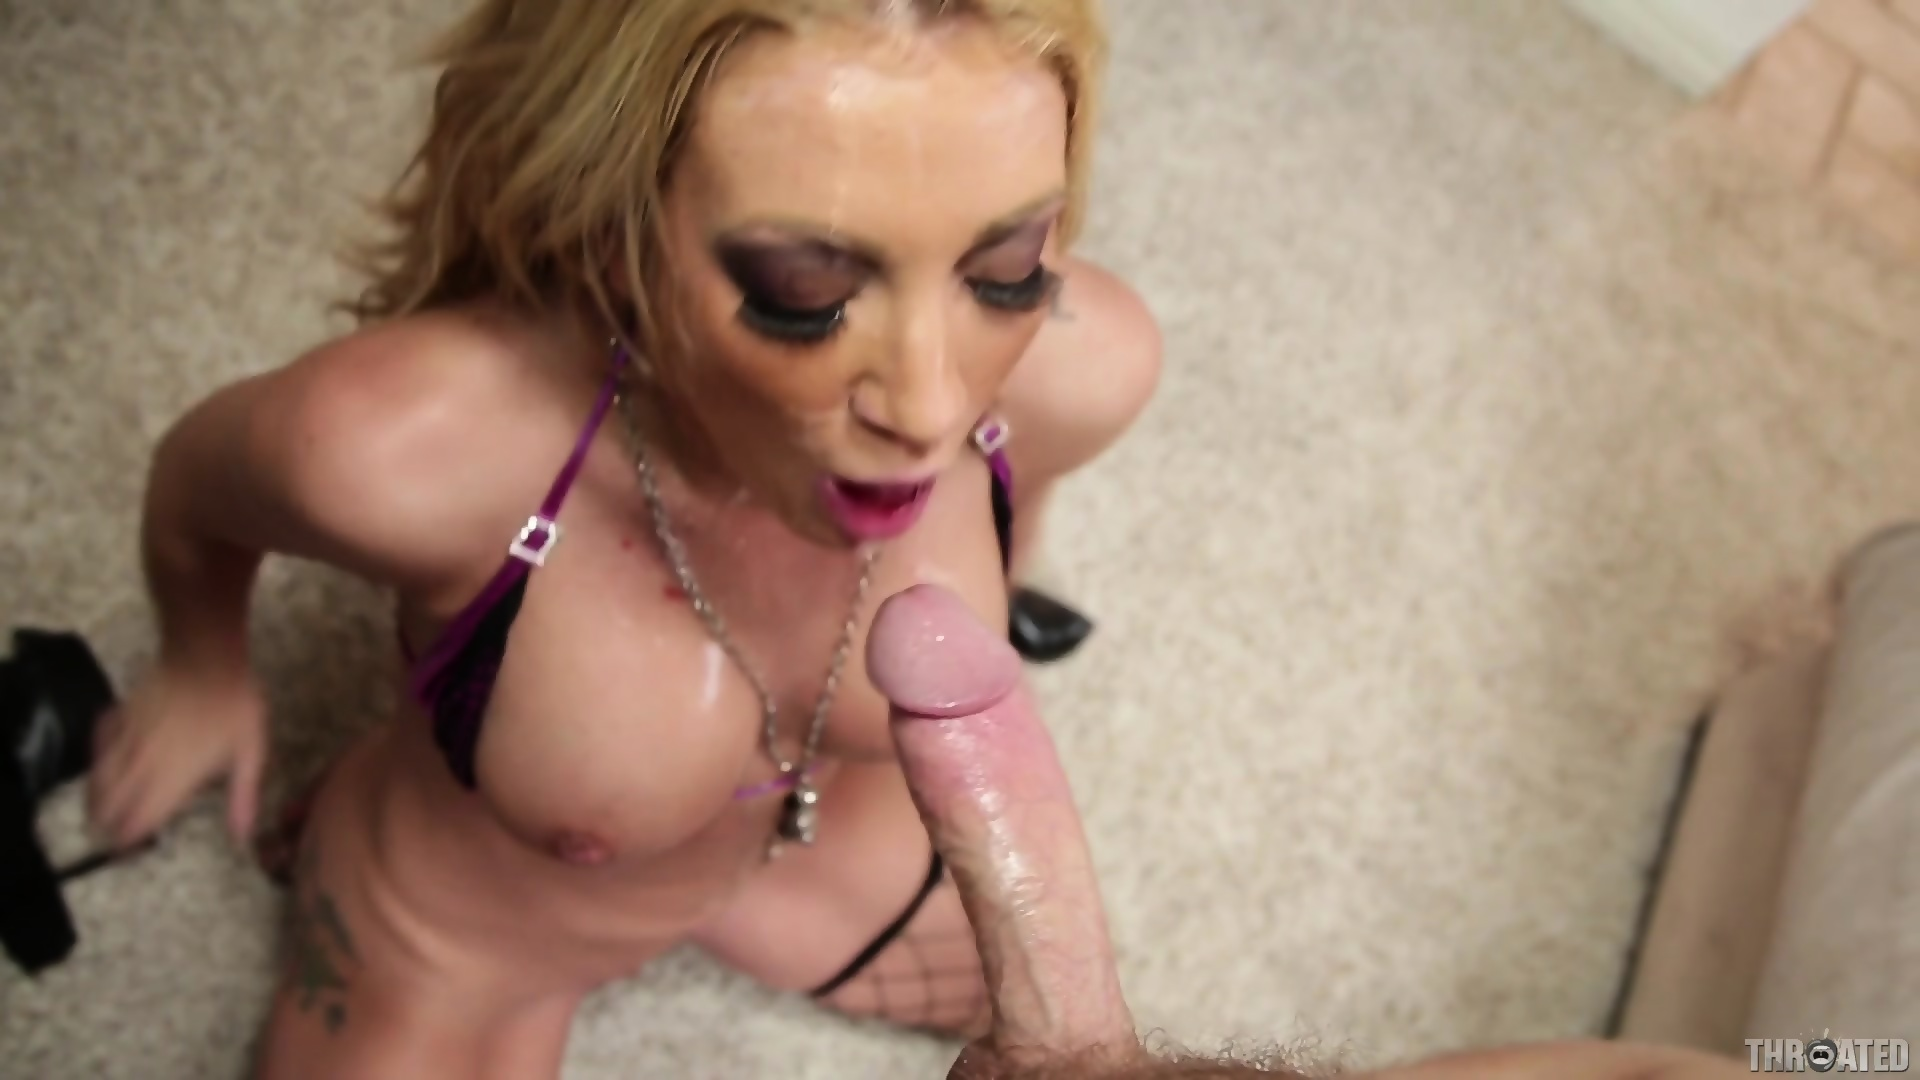 nene foursome ends with dp and a creampie